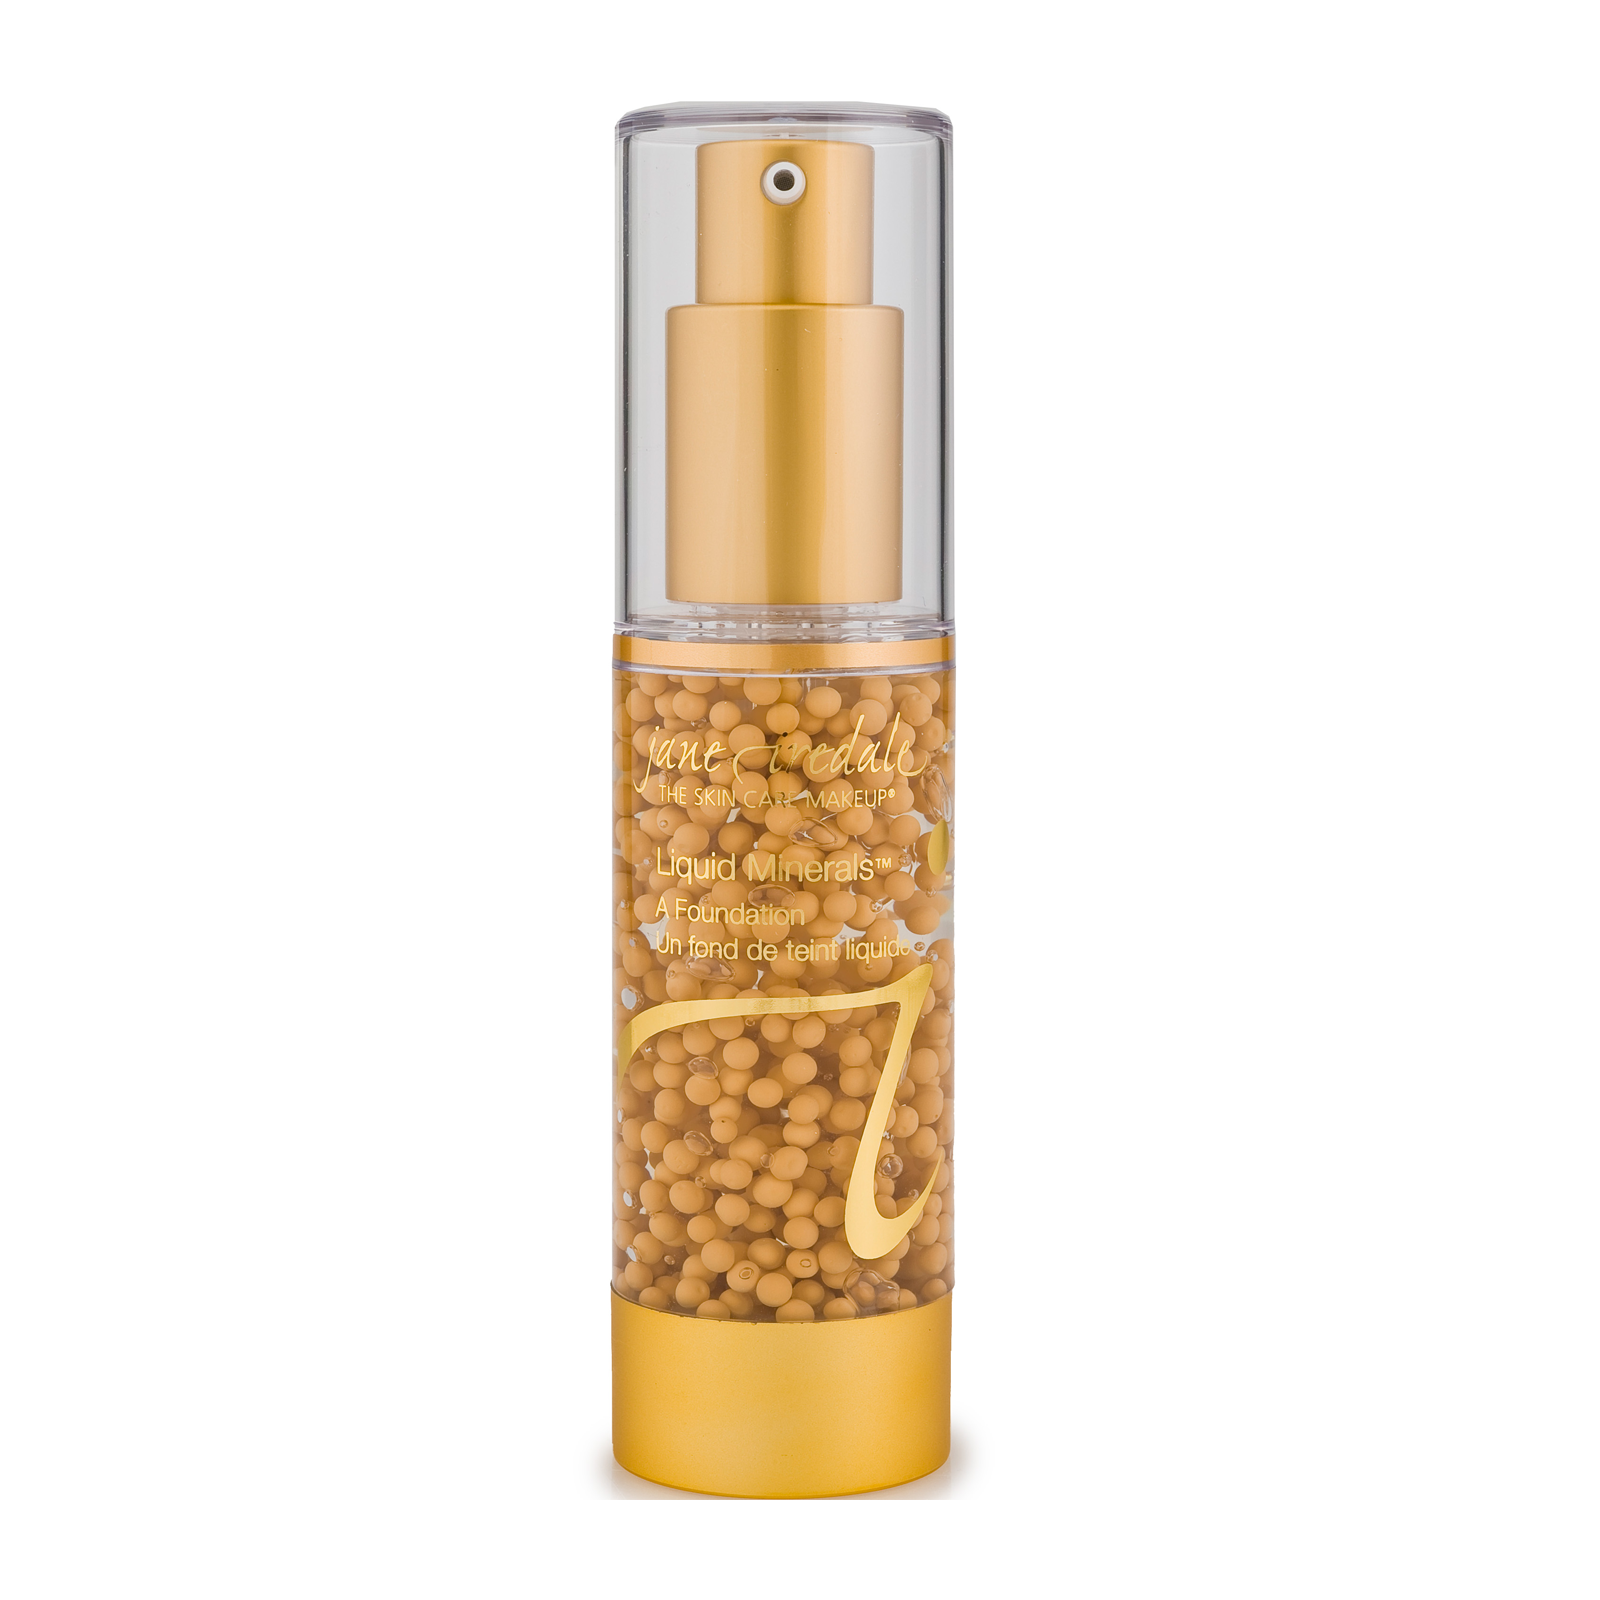 Jane Iredale Liquid Minerals Foundation, $52.00